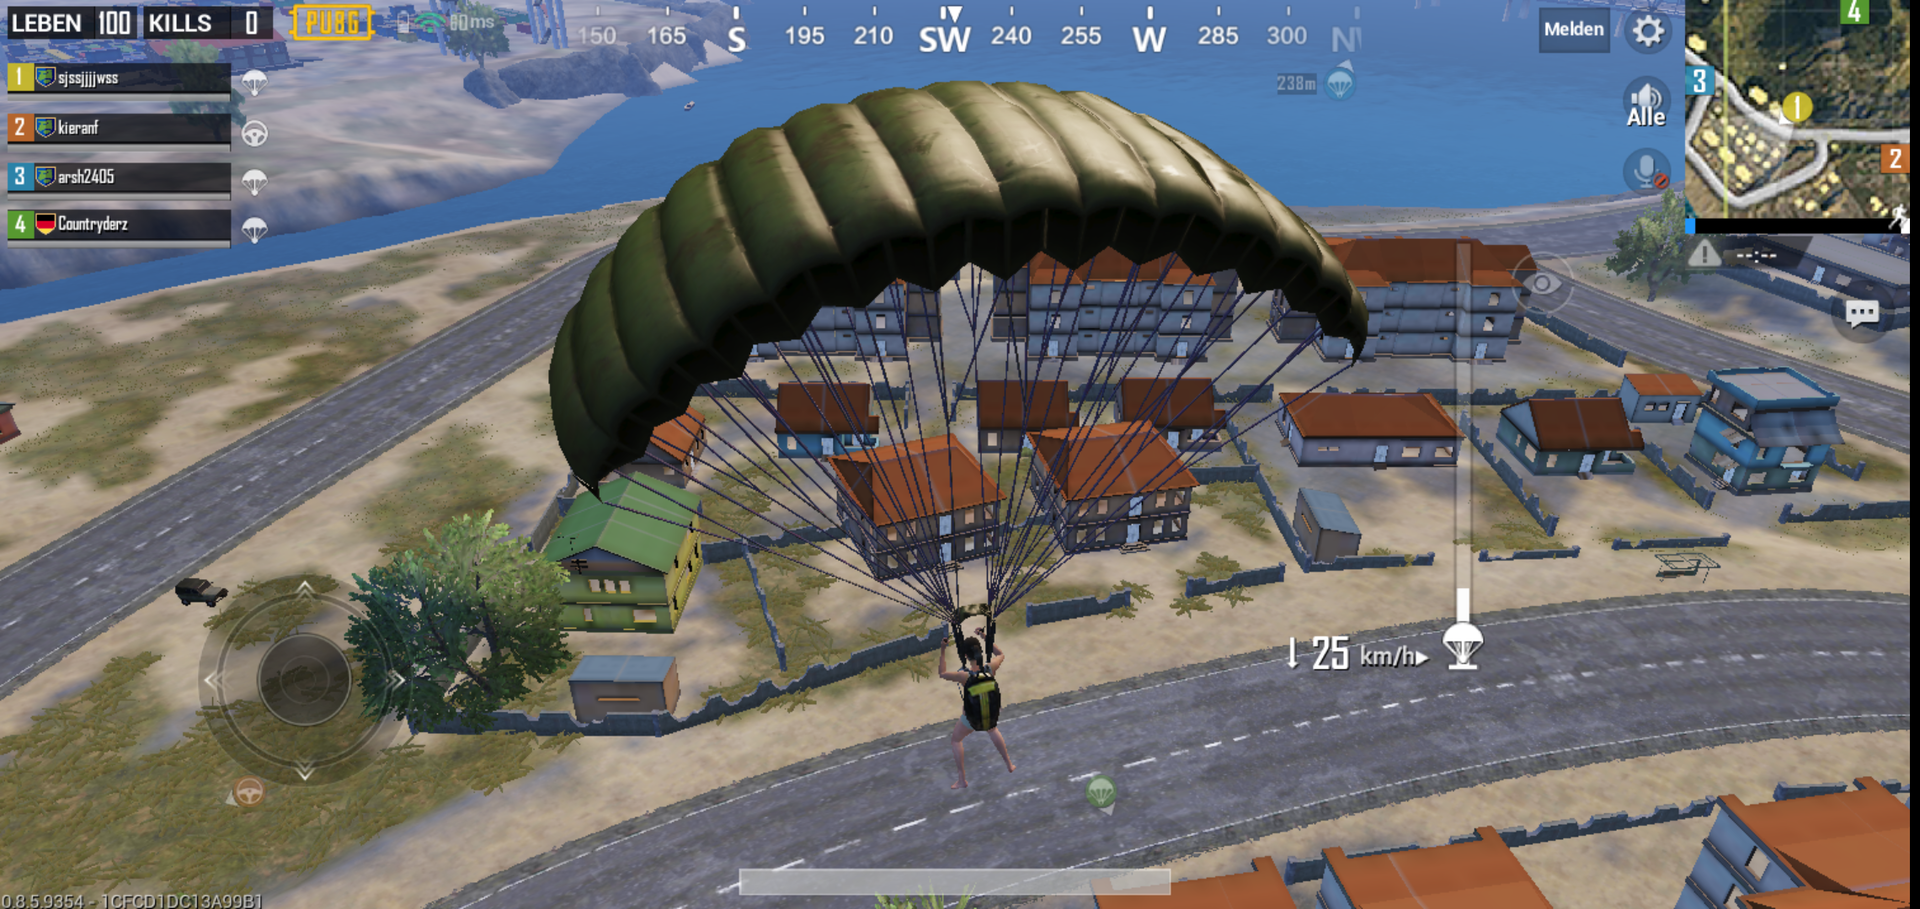 How To Play Pubg Mobile In Hdr Graphic With Any Smartphone: Xiaomi Redmi Note 6 Pro Smartphone Review